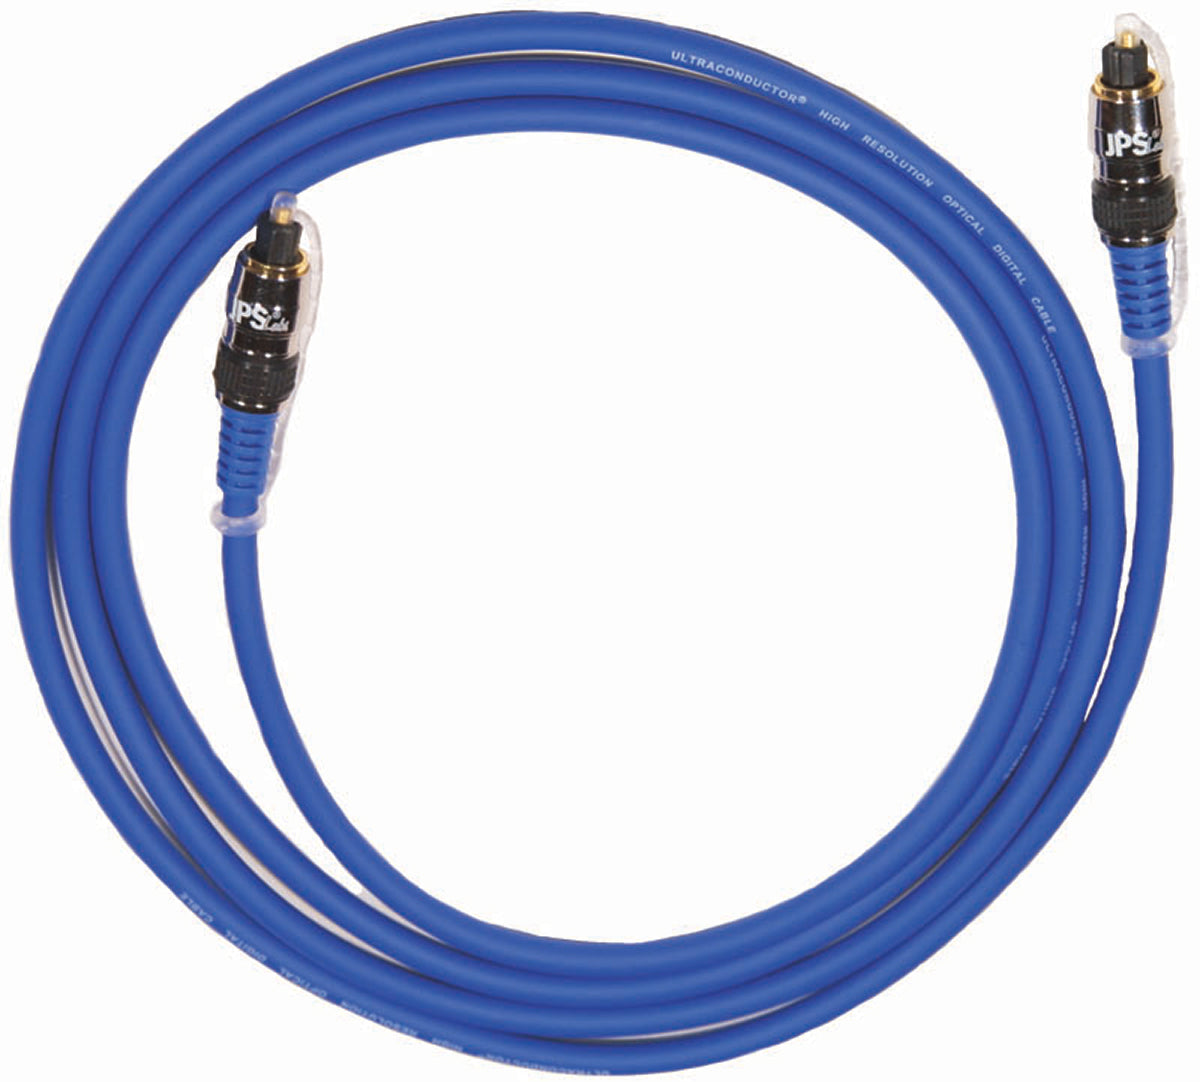 JPS Labs UltraConductor 2 Toslink Optical Cable